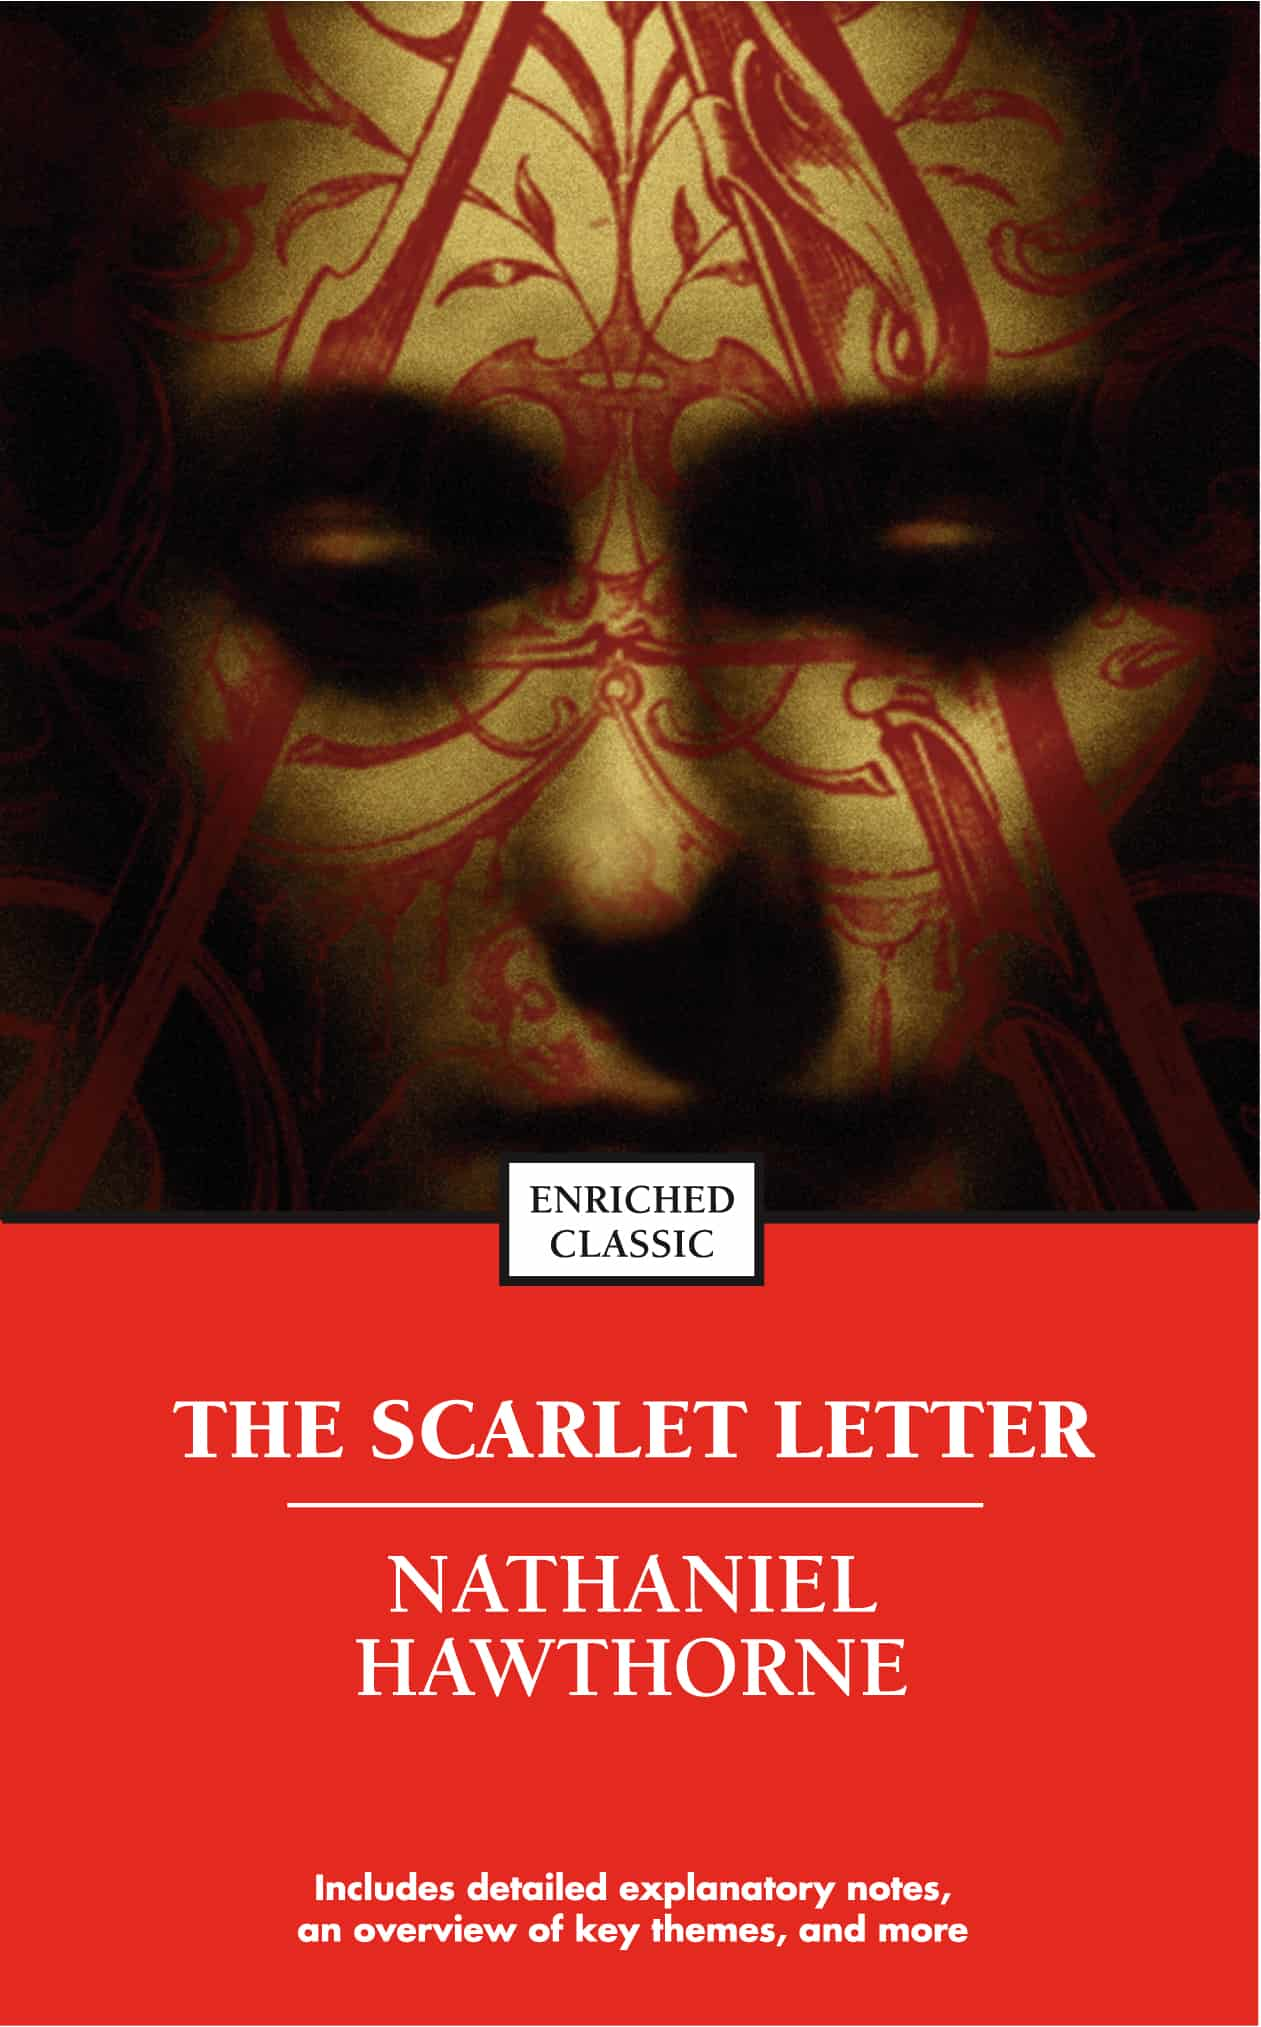 The Scarlet Letter Books to Read